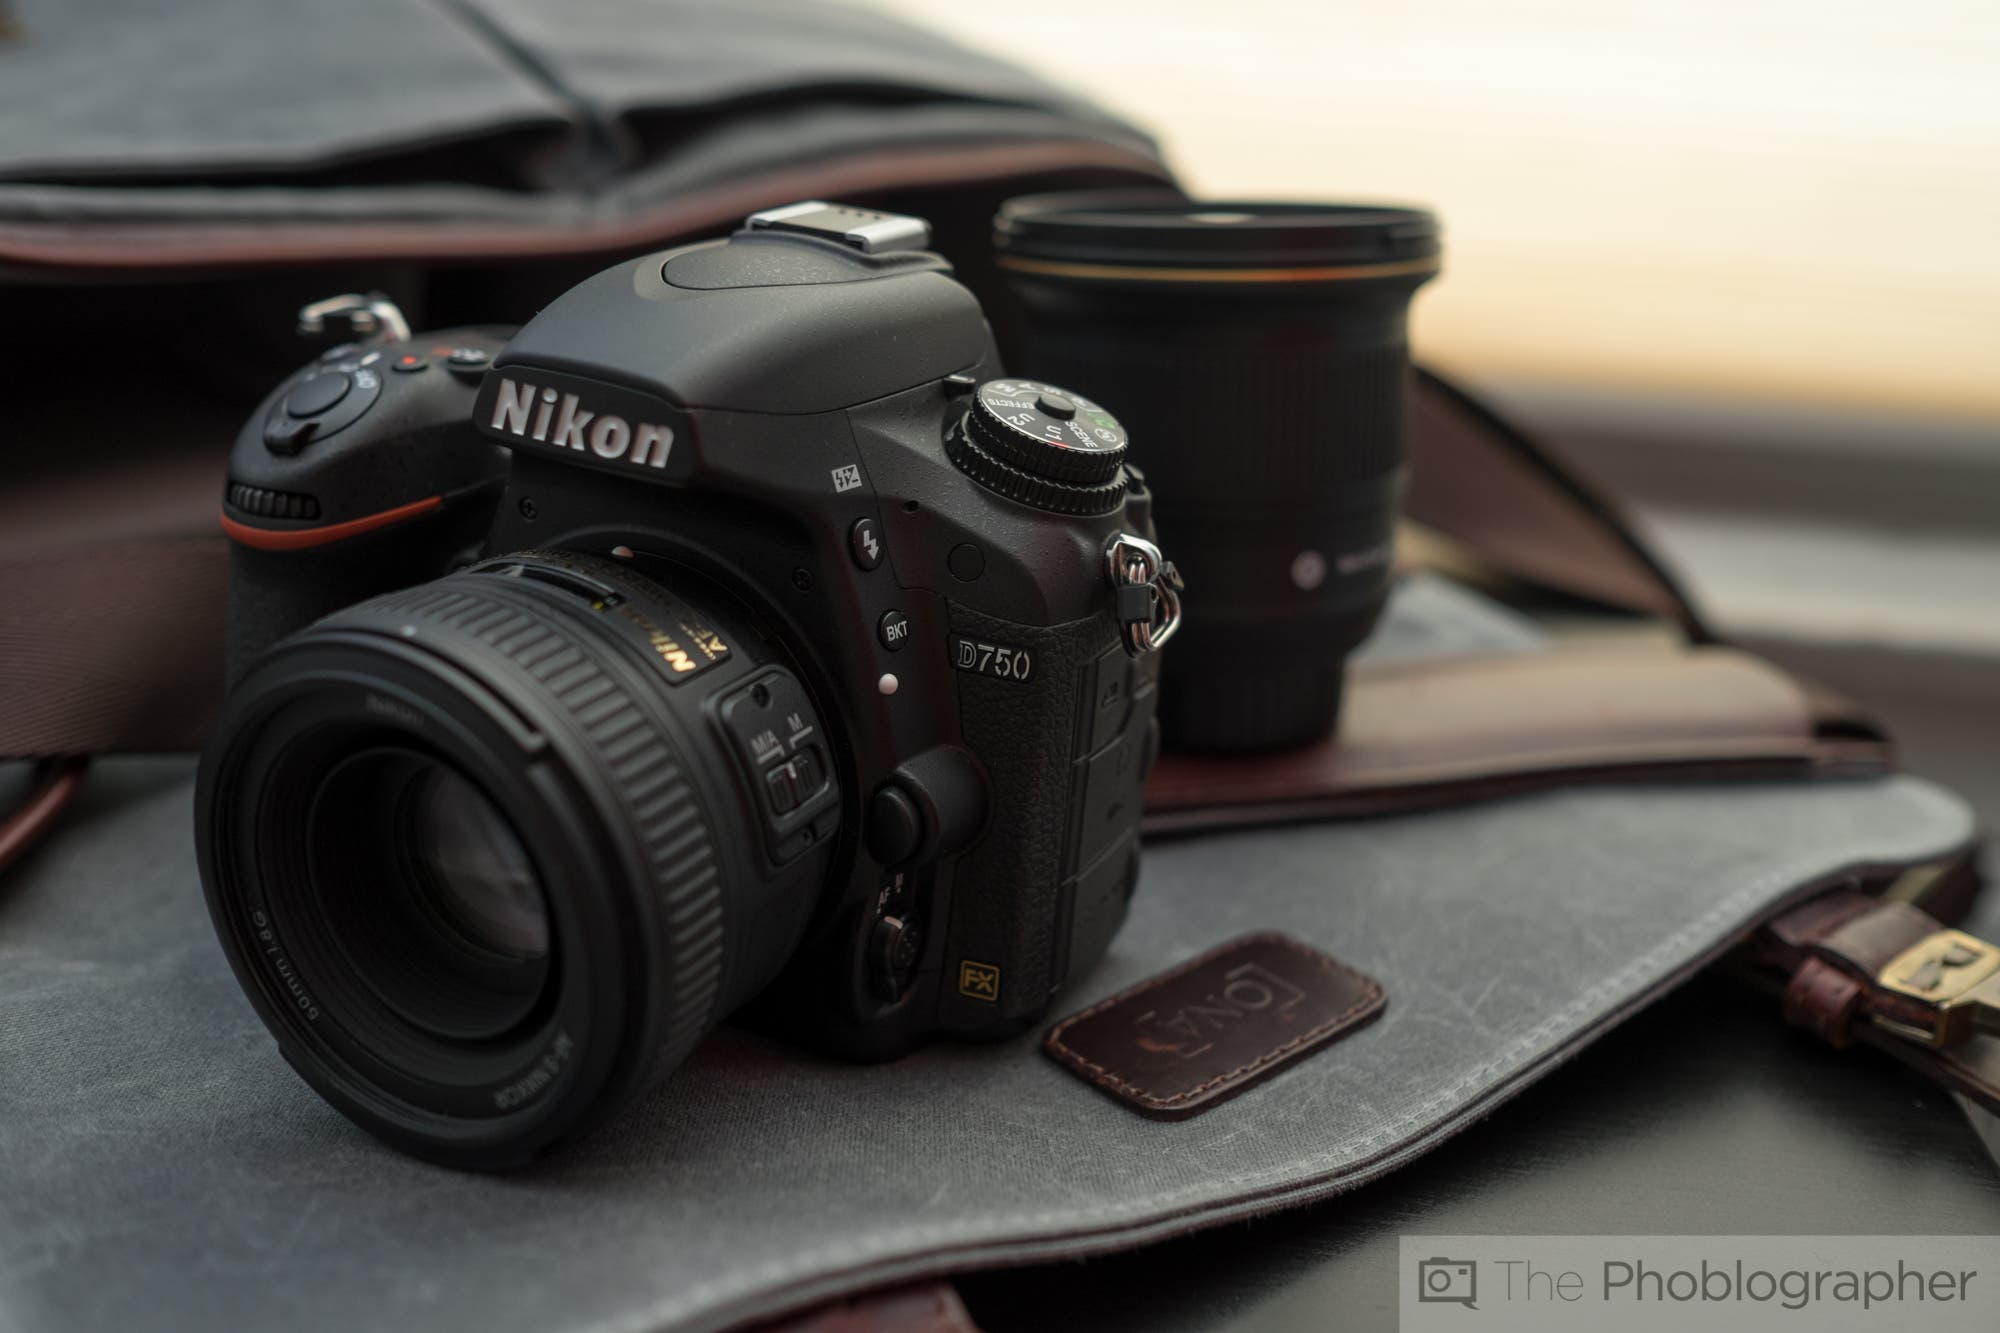 Nikon Camera Guide: Our Four Favorite Nikon Cameras for Beginners, Hobbyists, and Pros